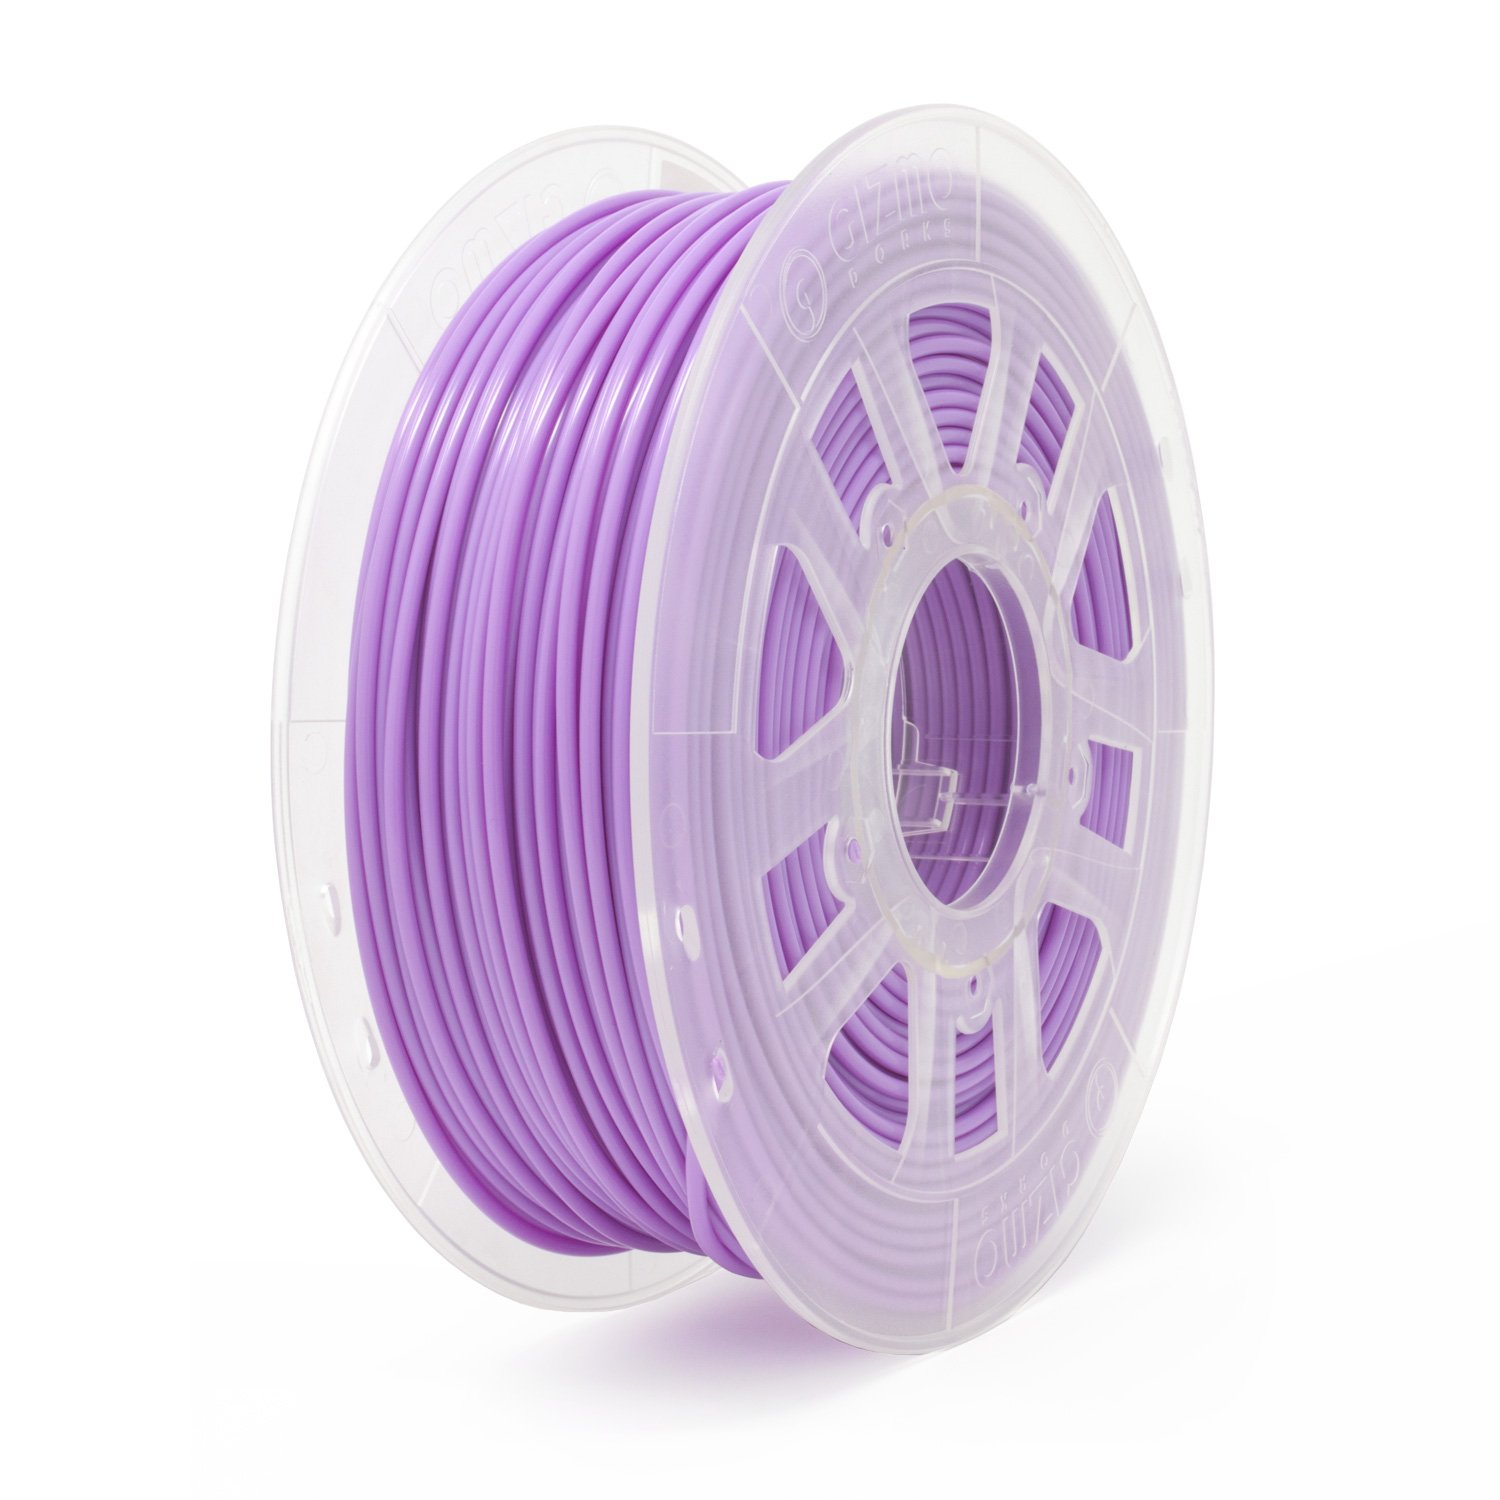 Violet Gizmo Dorks 1.75 mm ABS Filament 1 kg for 3D Printers